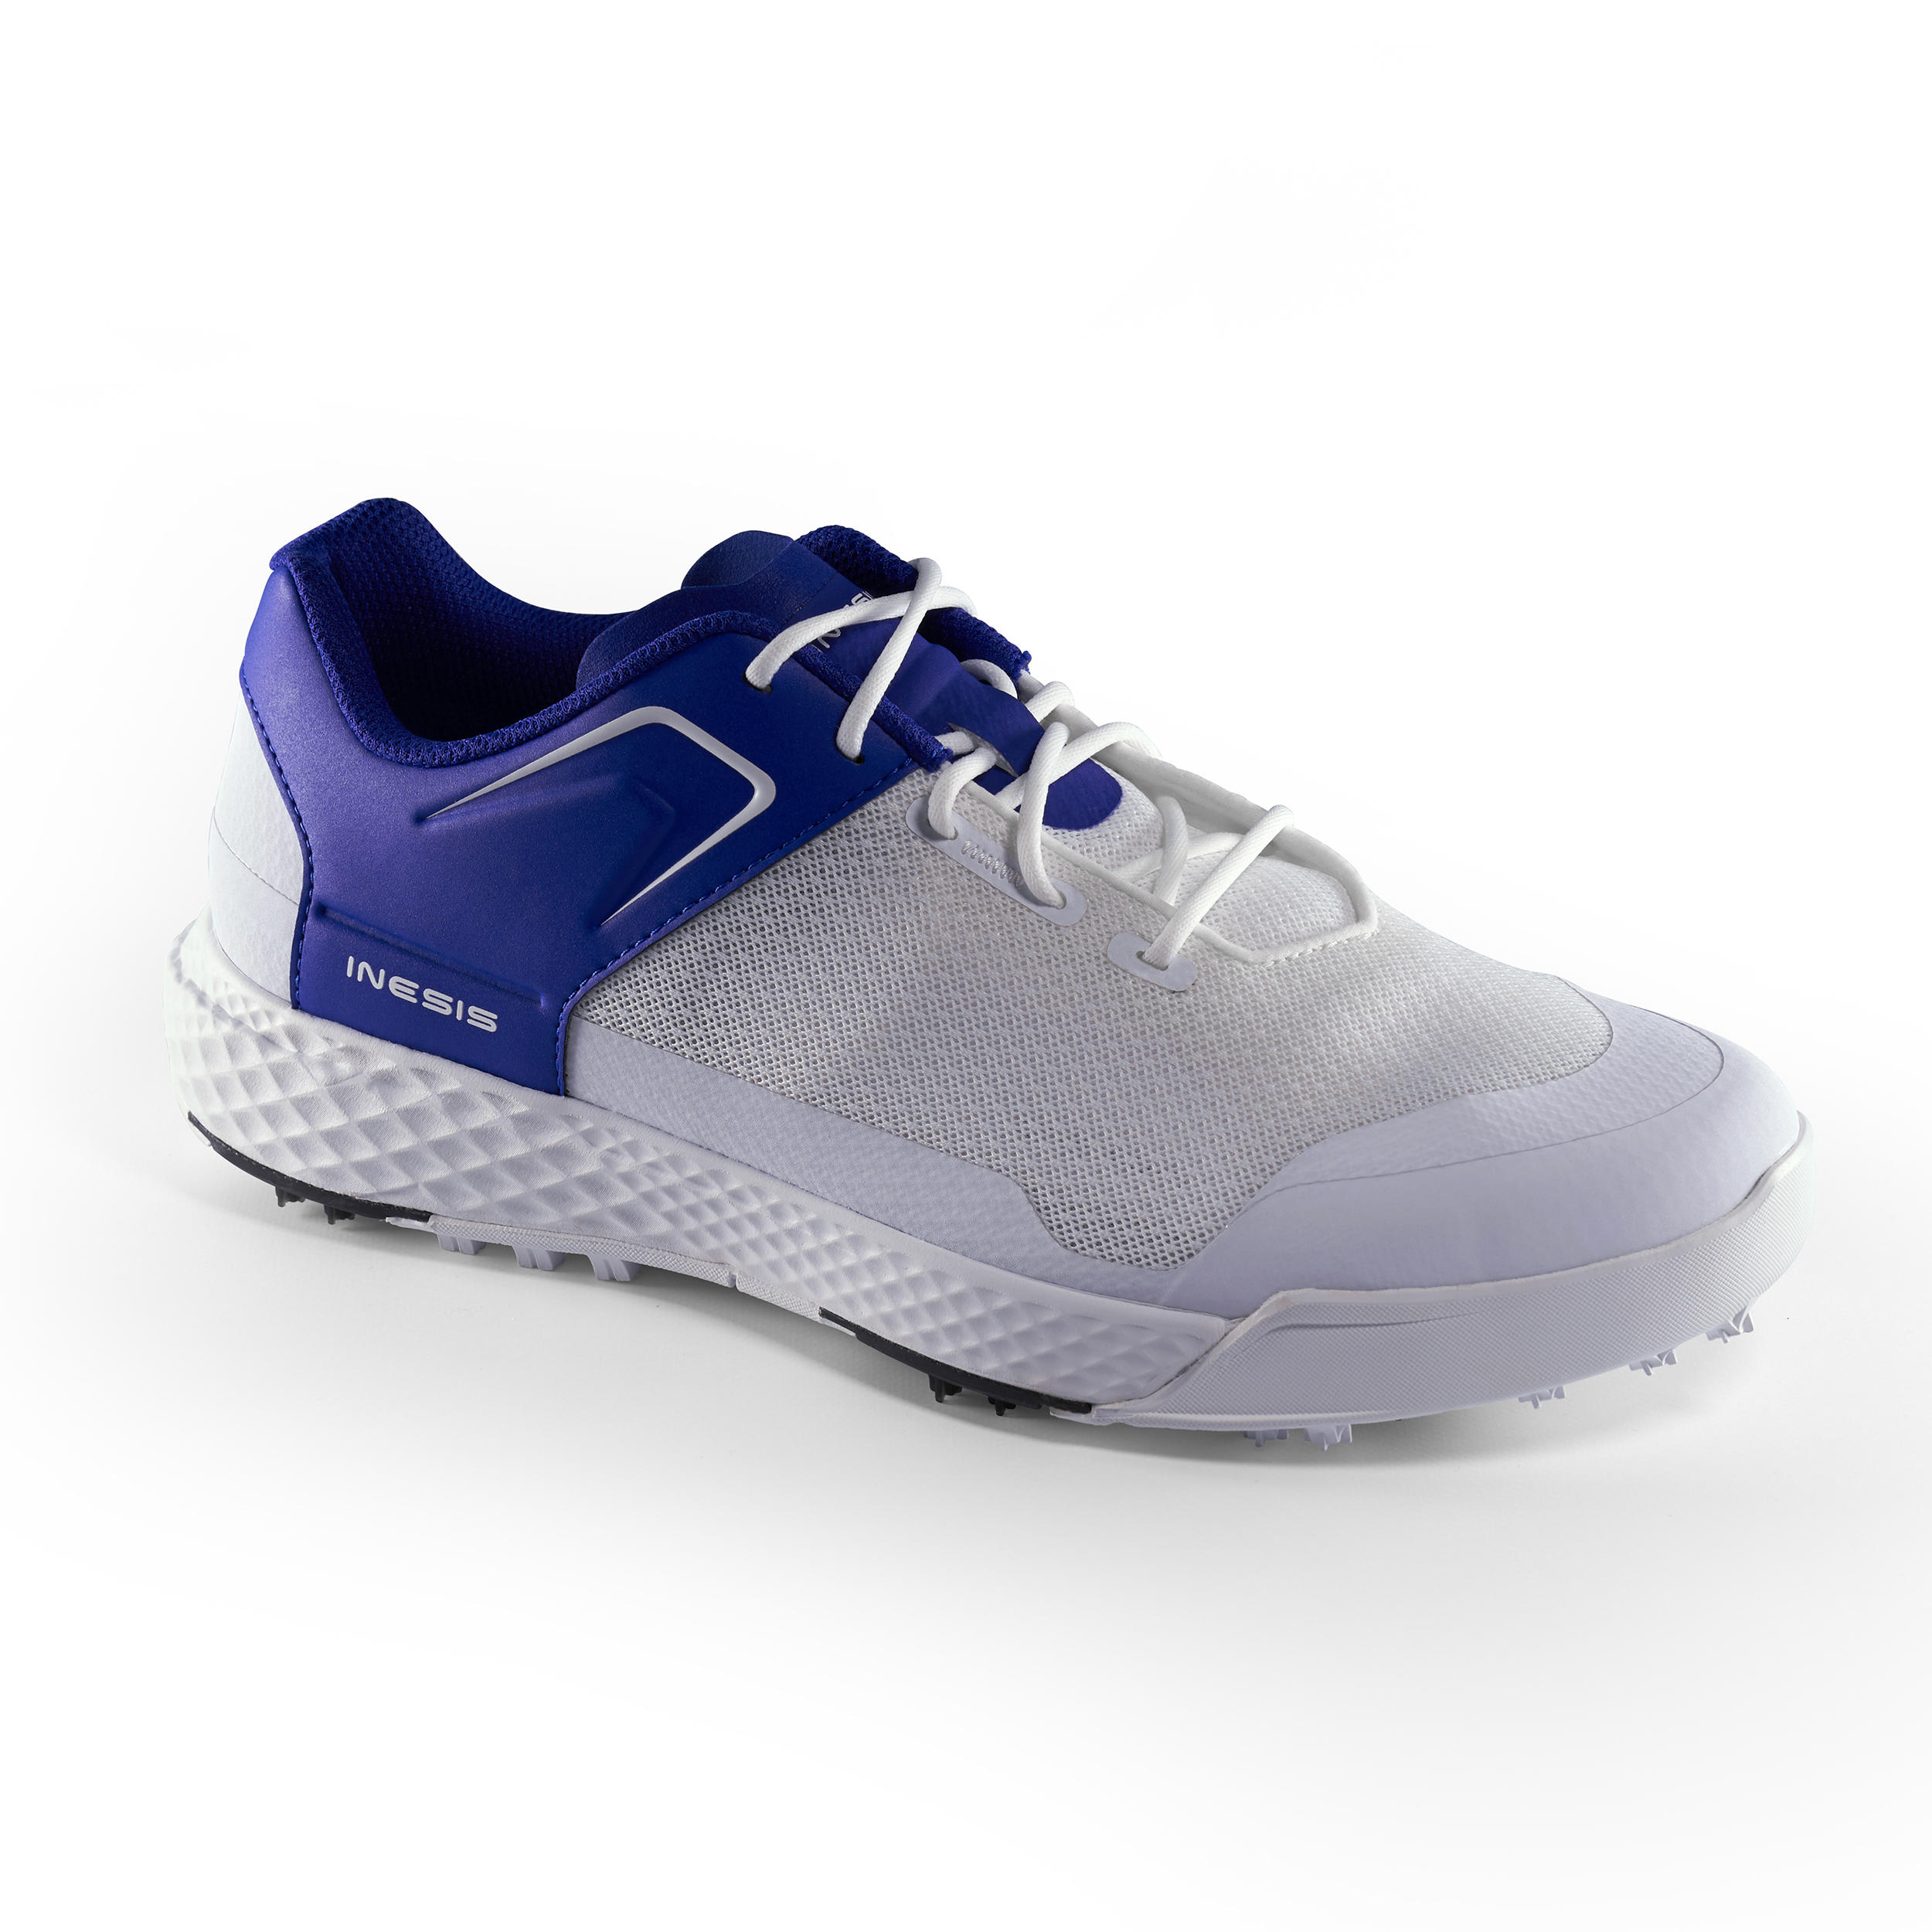 Comprar Zapatos de Golf online | Decathlon